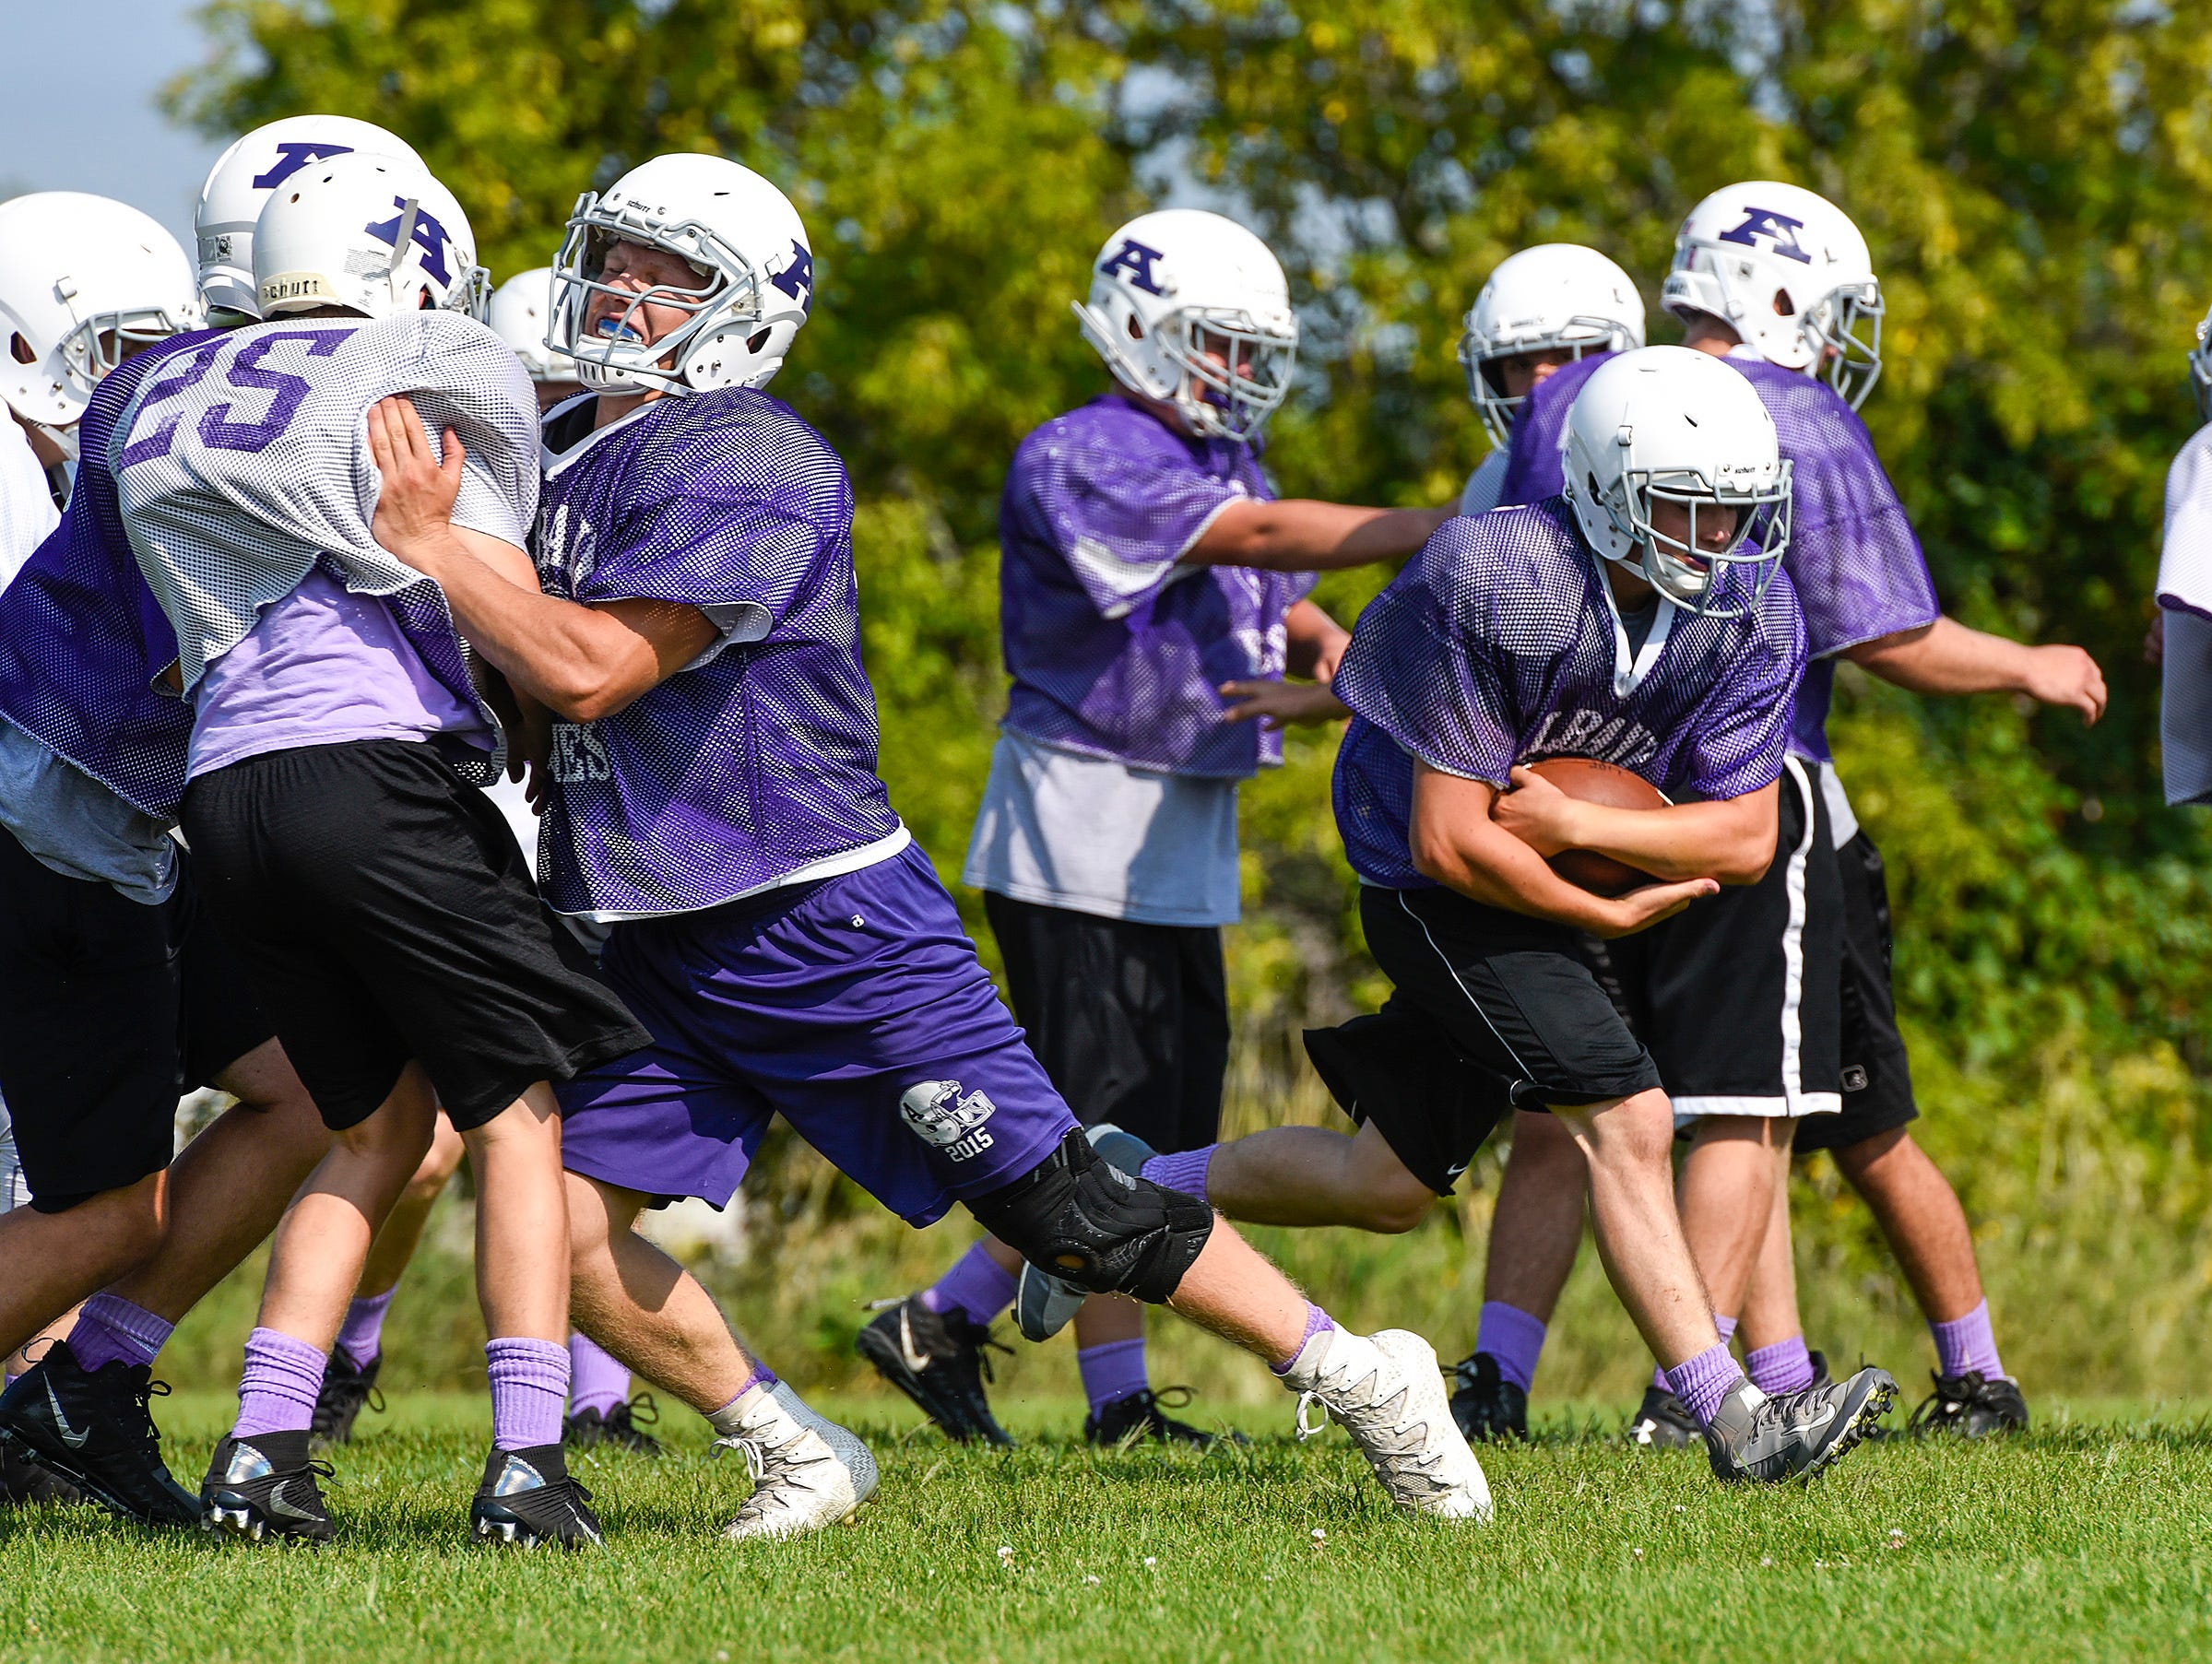 Albany Fullback Carter Kotzer breaks into the open during practice Wednesday, Aug. 15, at the Albany High School.